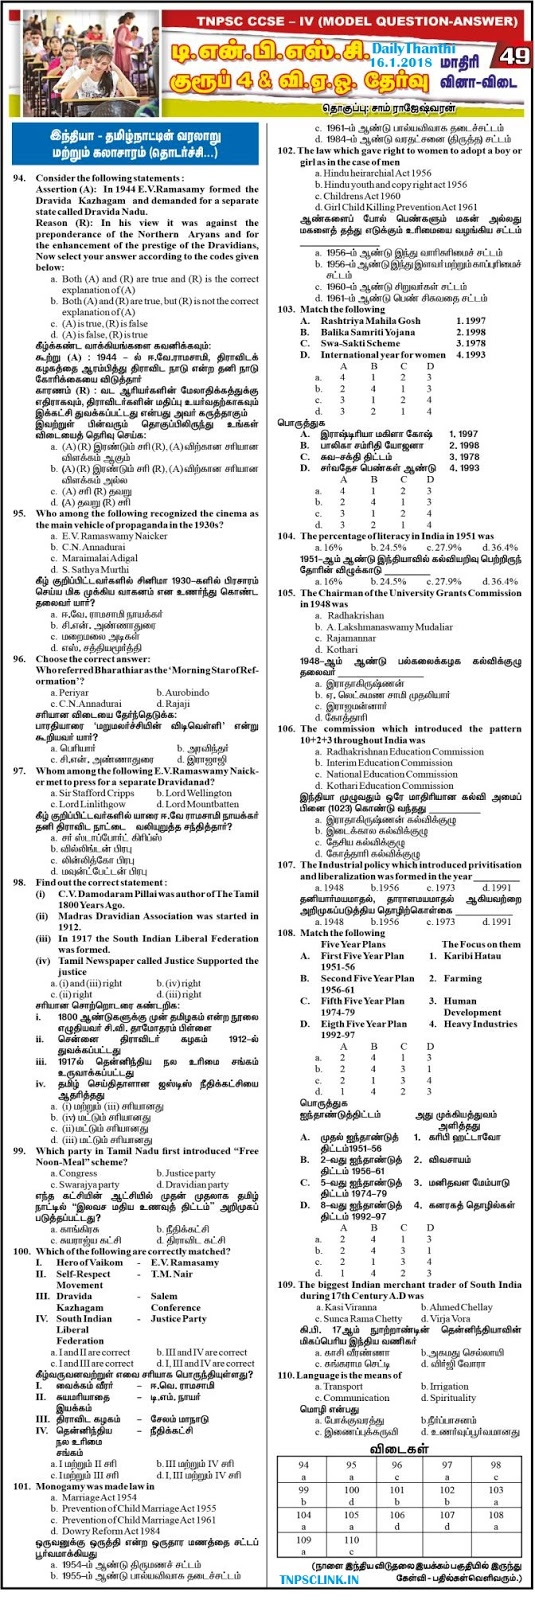 TNPSC Group 4 History Tamil (Dinathanthi Jan 16, 2018) Download as PDF